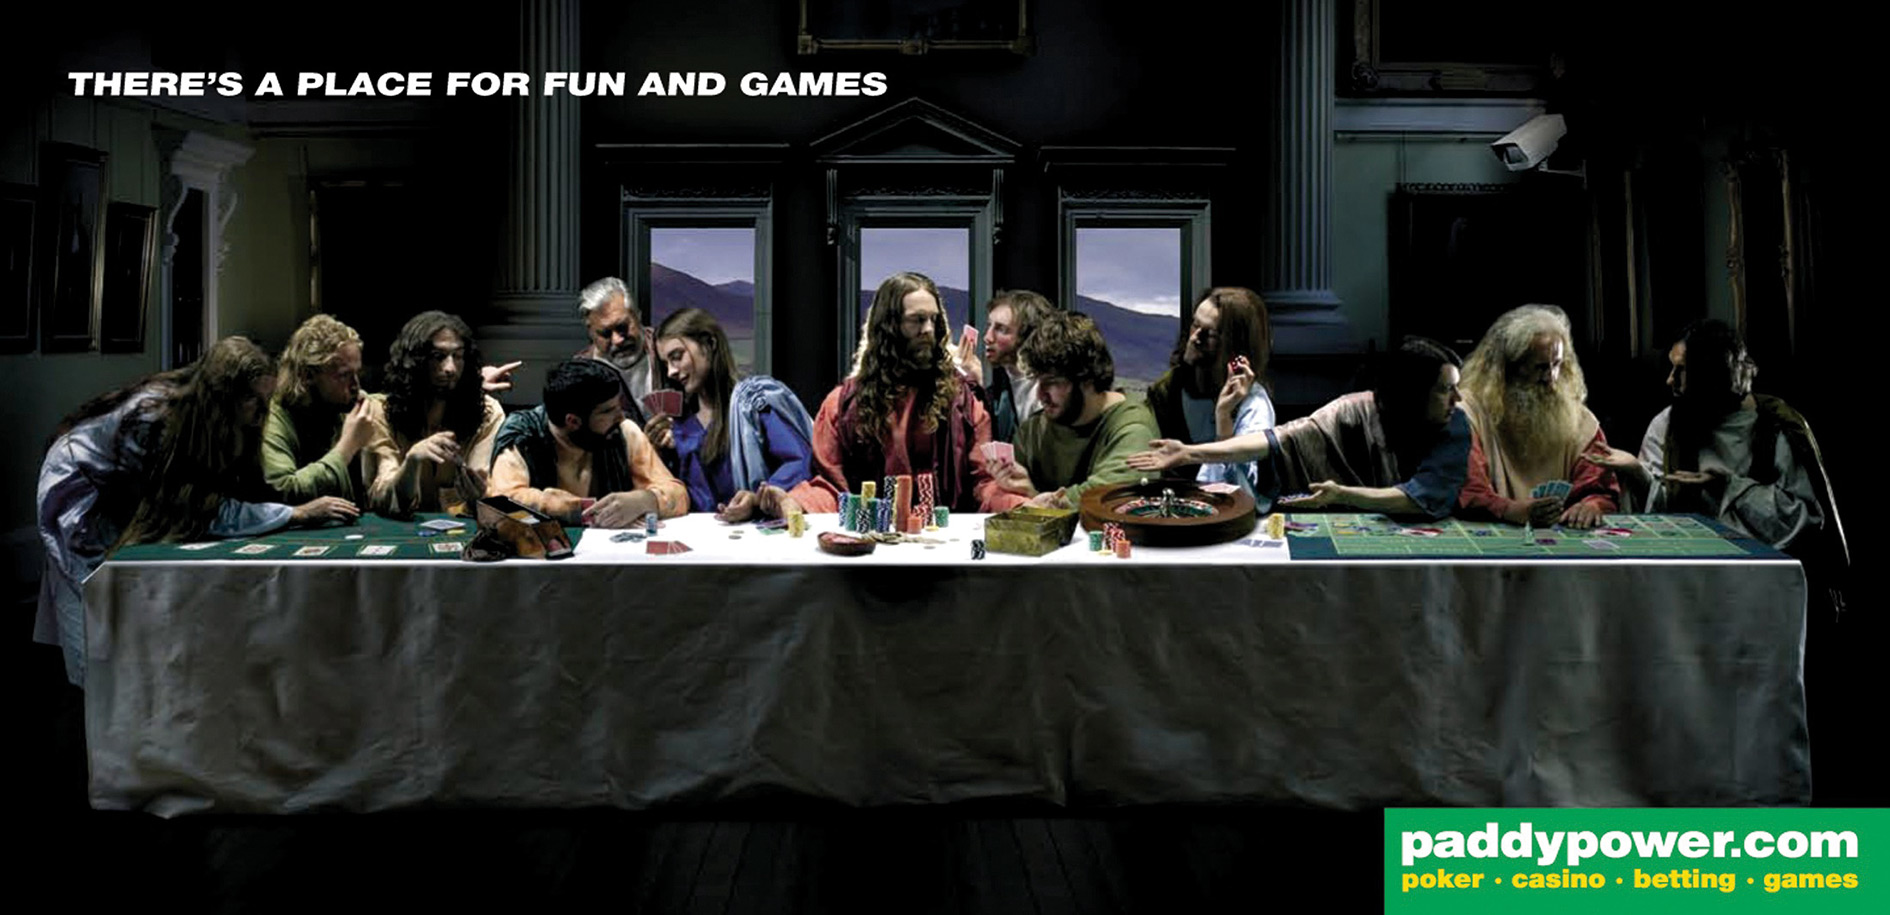 The last gamble: this poster, playing on Leonardo da Vinci's Last Supper, caused outrage in Catholic Ireland, where bookmaker Paddy Power is based.